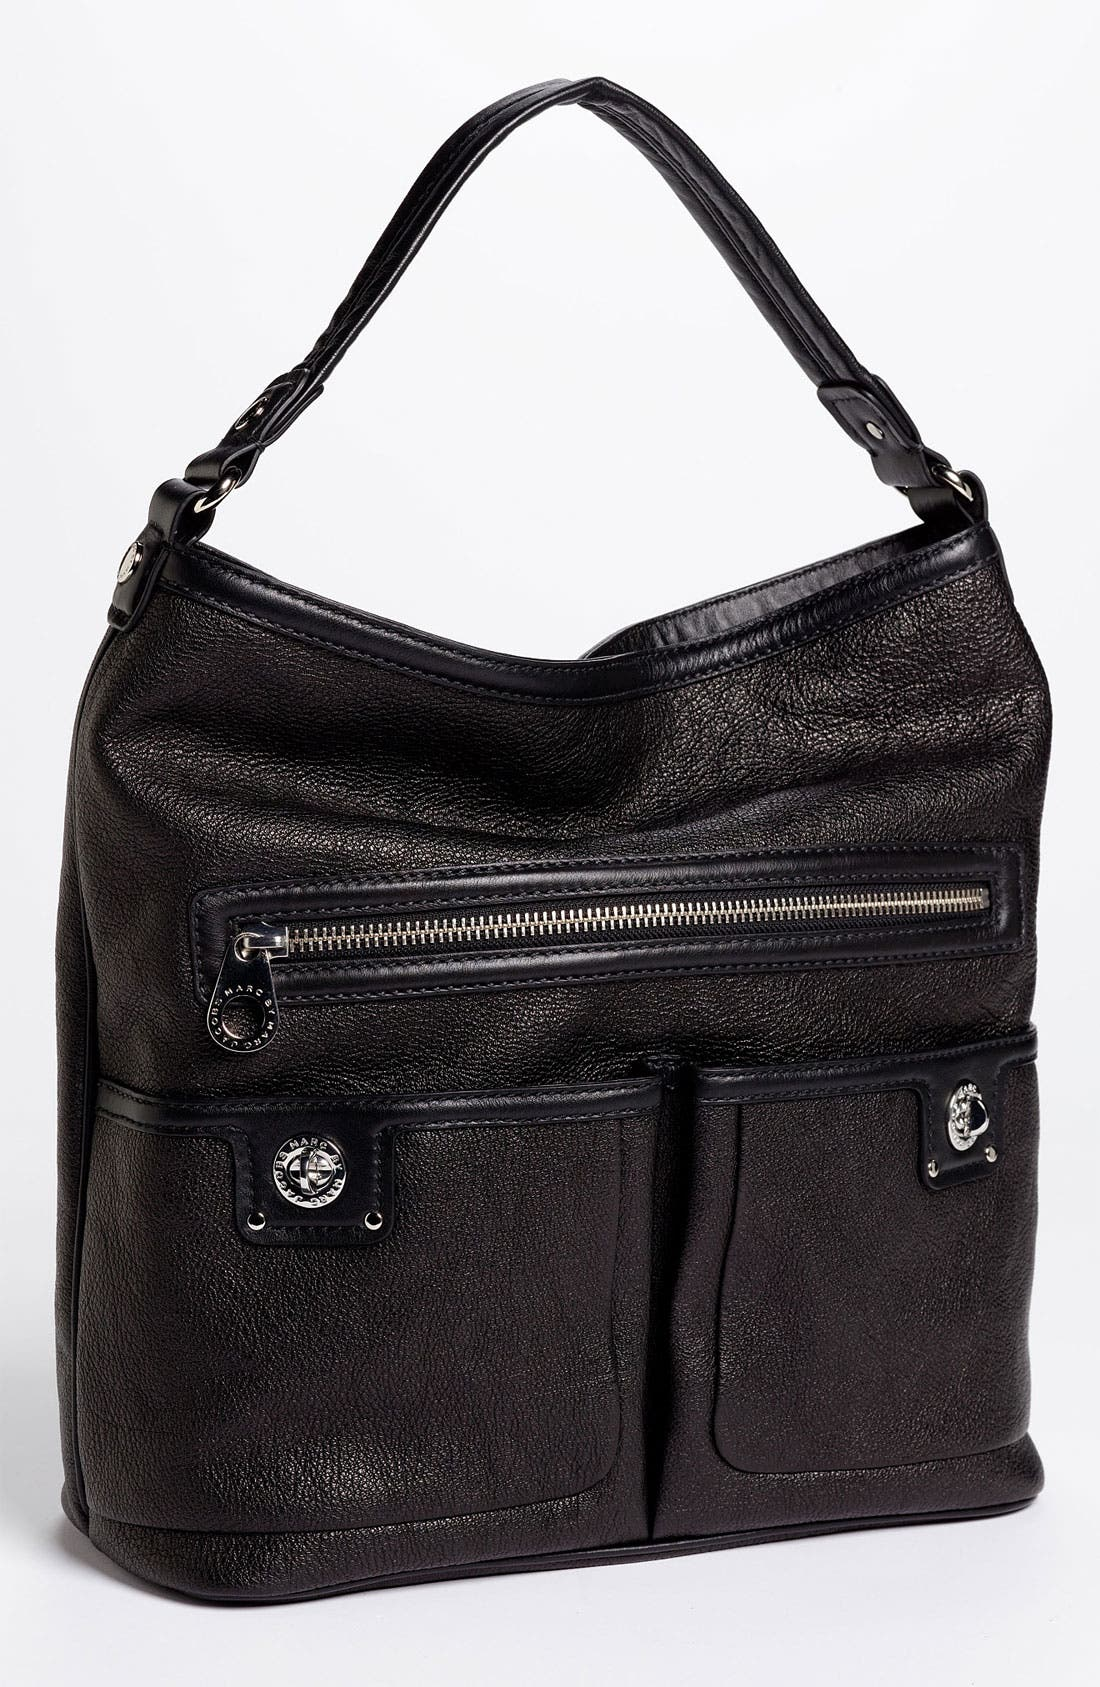 MARC JACOBS MARC BY MARC JACOBS 'Totally Turnlock - Faridah' Hobo, Main, color, 001